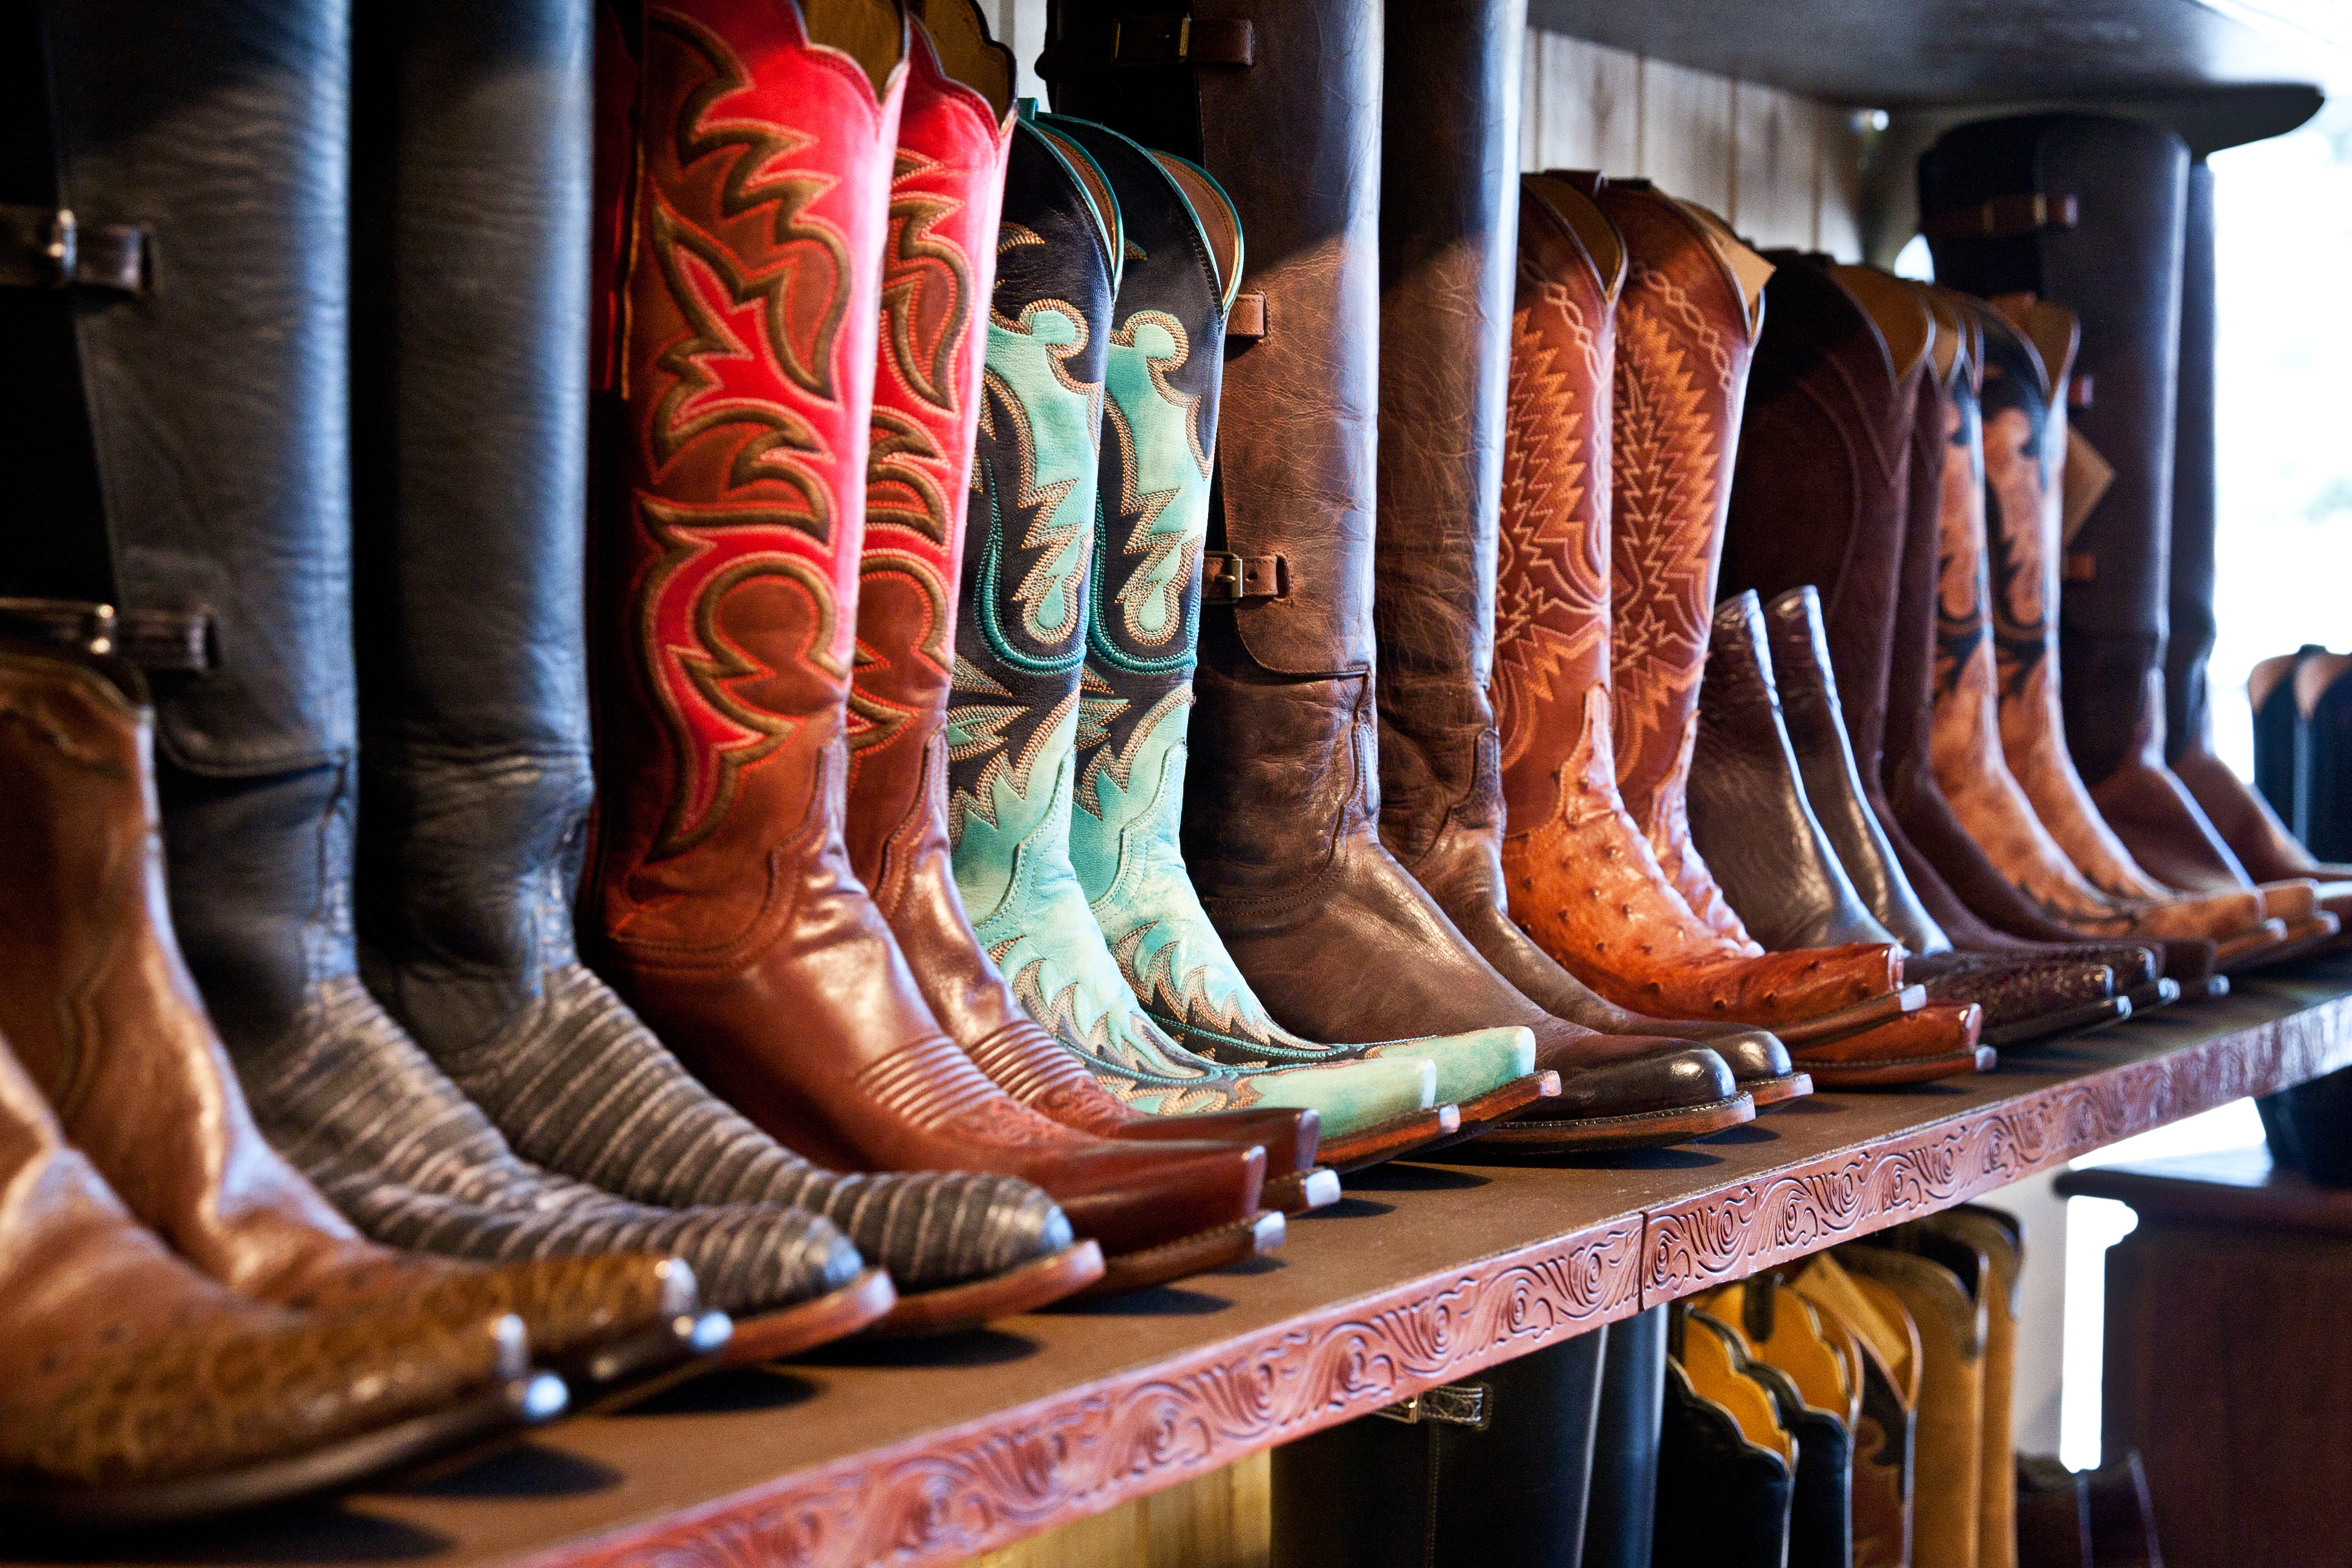 western-style boots lined up on a shelf